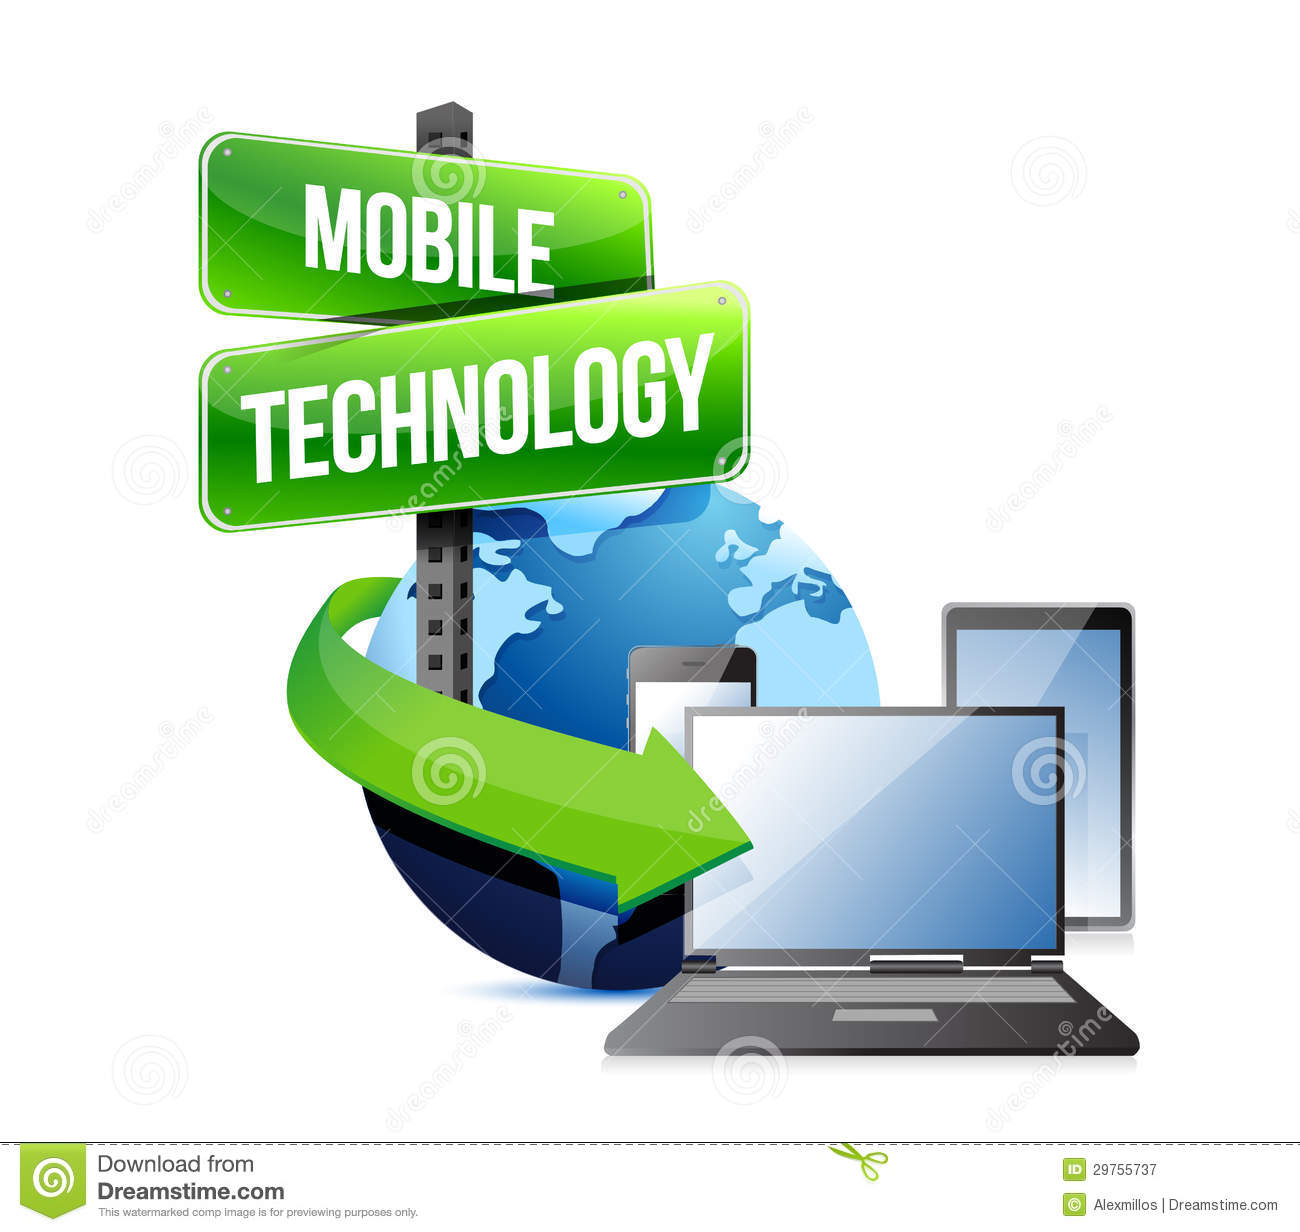 Mobile Technology: Electronic Devices Mobile Technology Royalty Free Stock